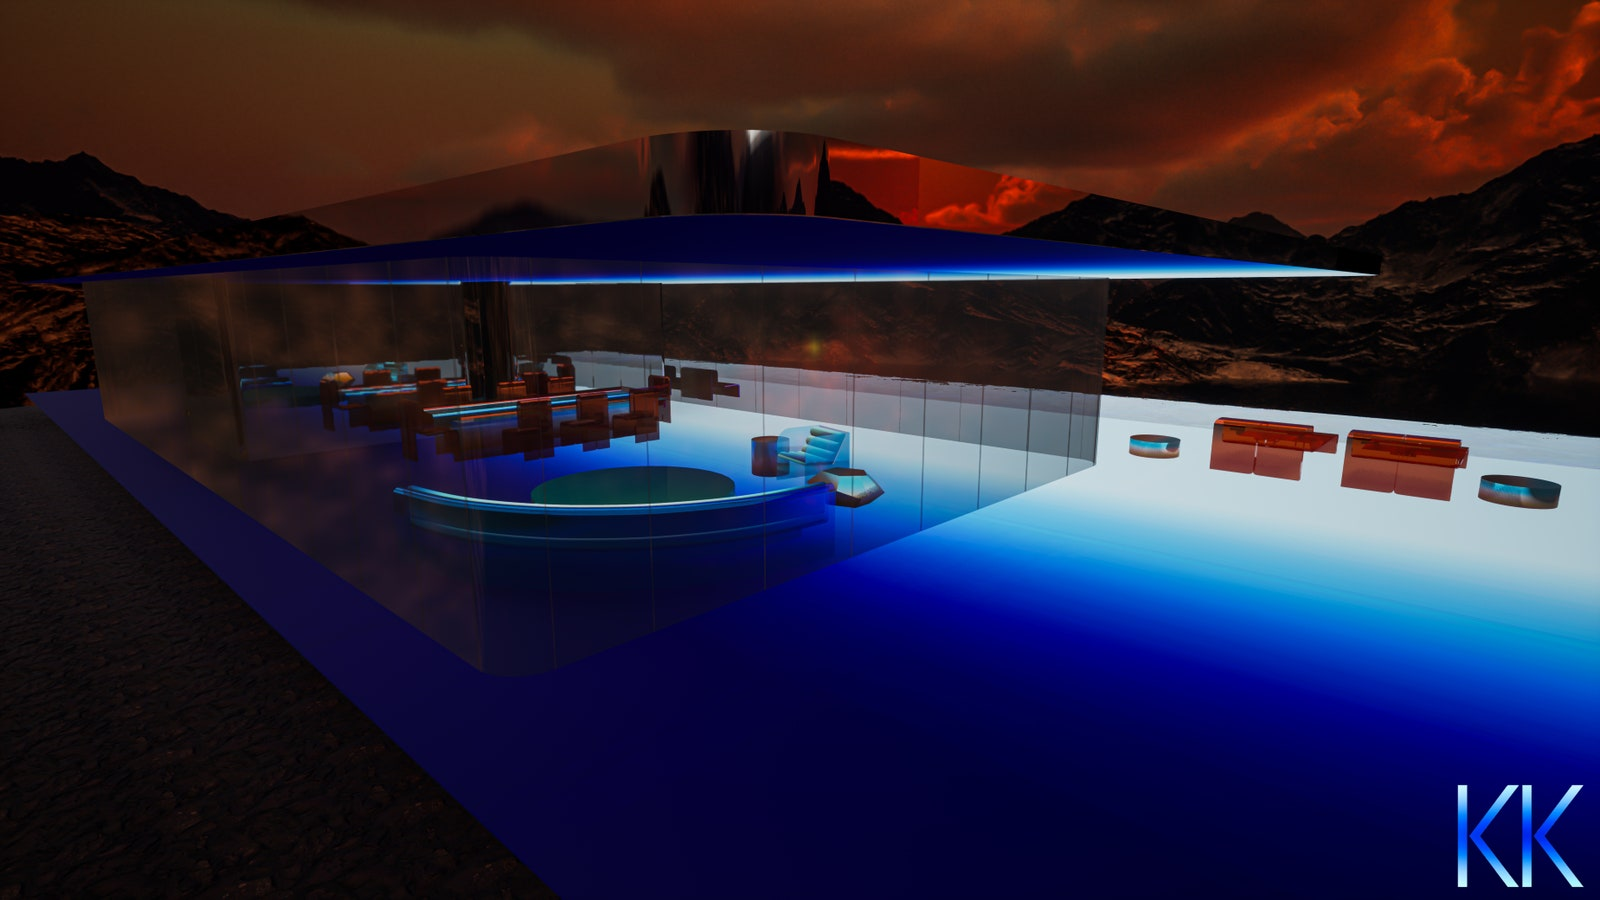 pThe otherworldly structure is made up entirely of light with an LED substrate extending throughout the entire house...